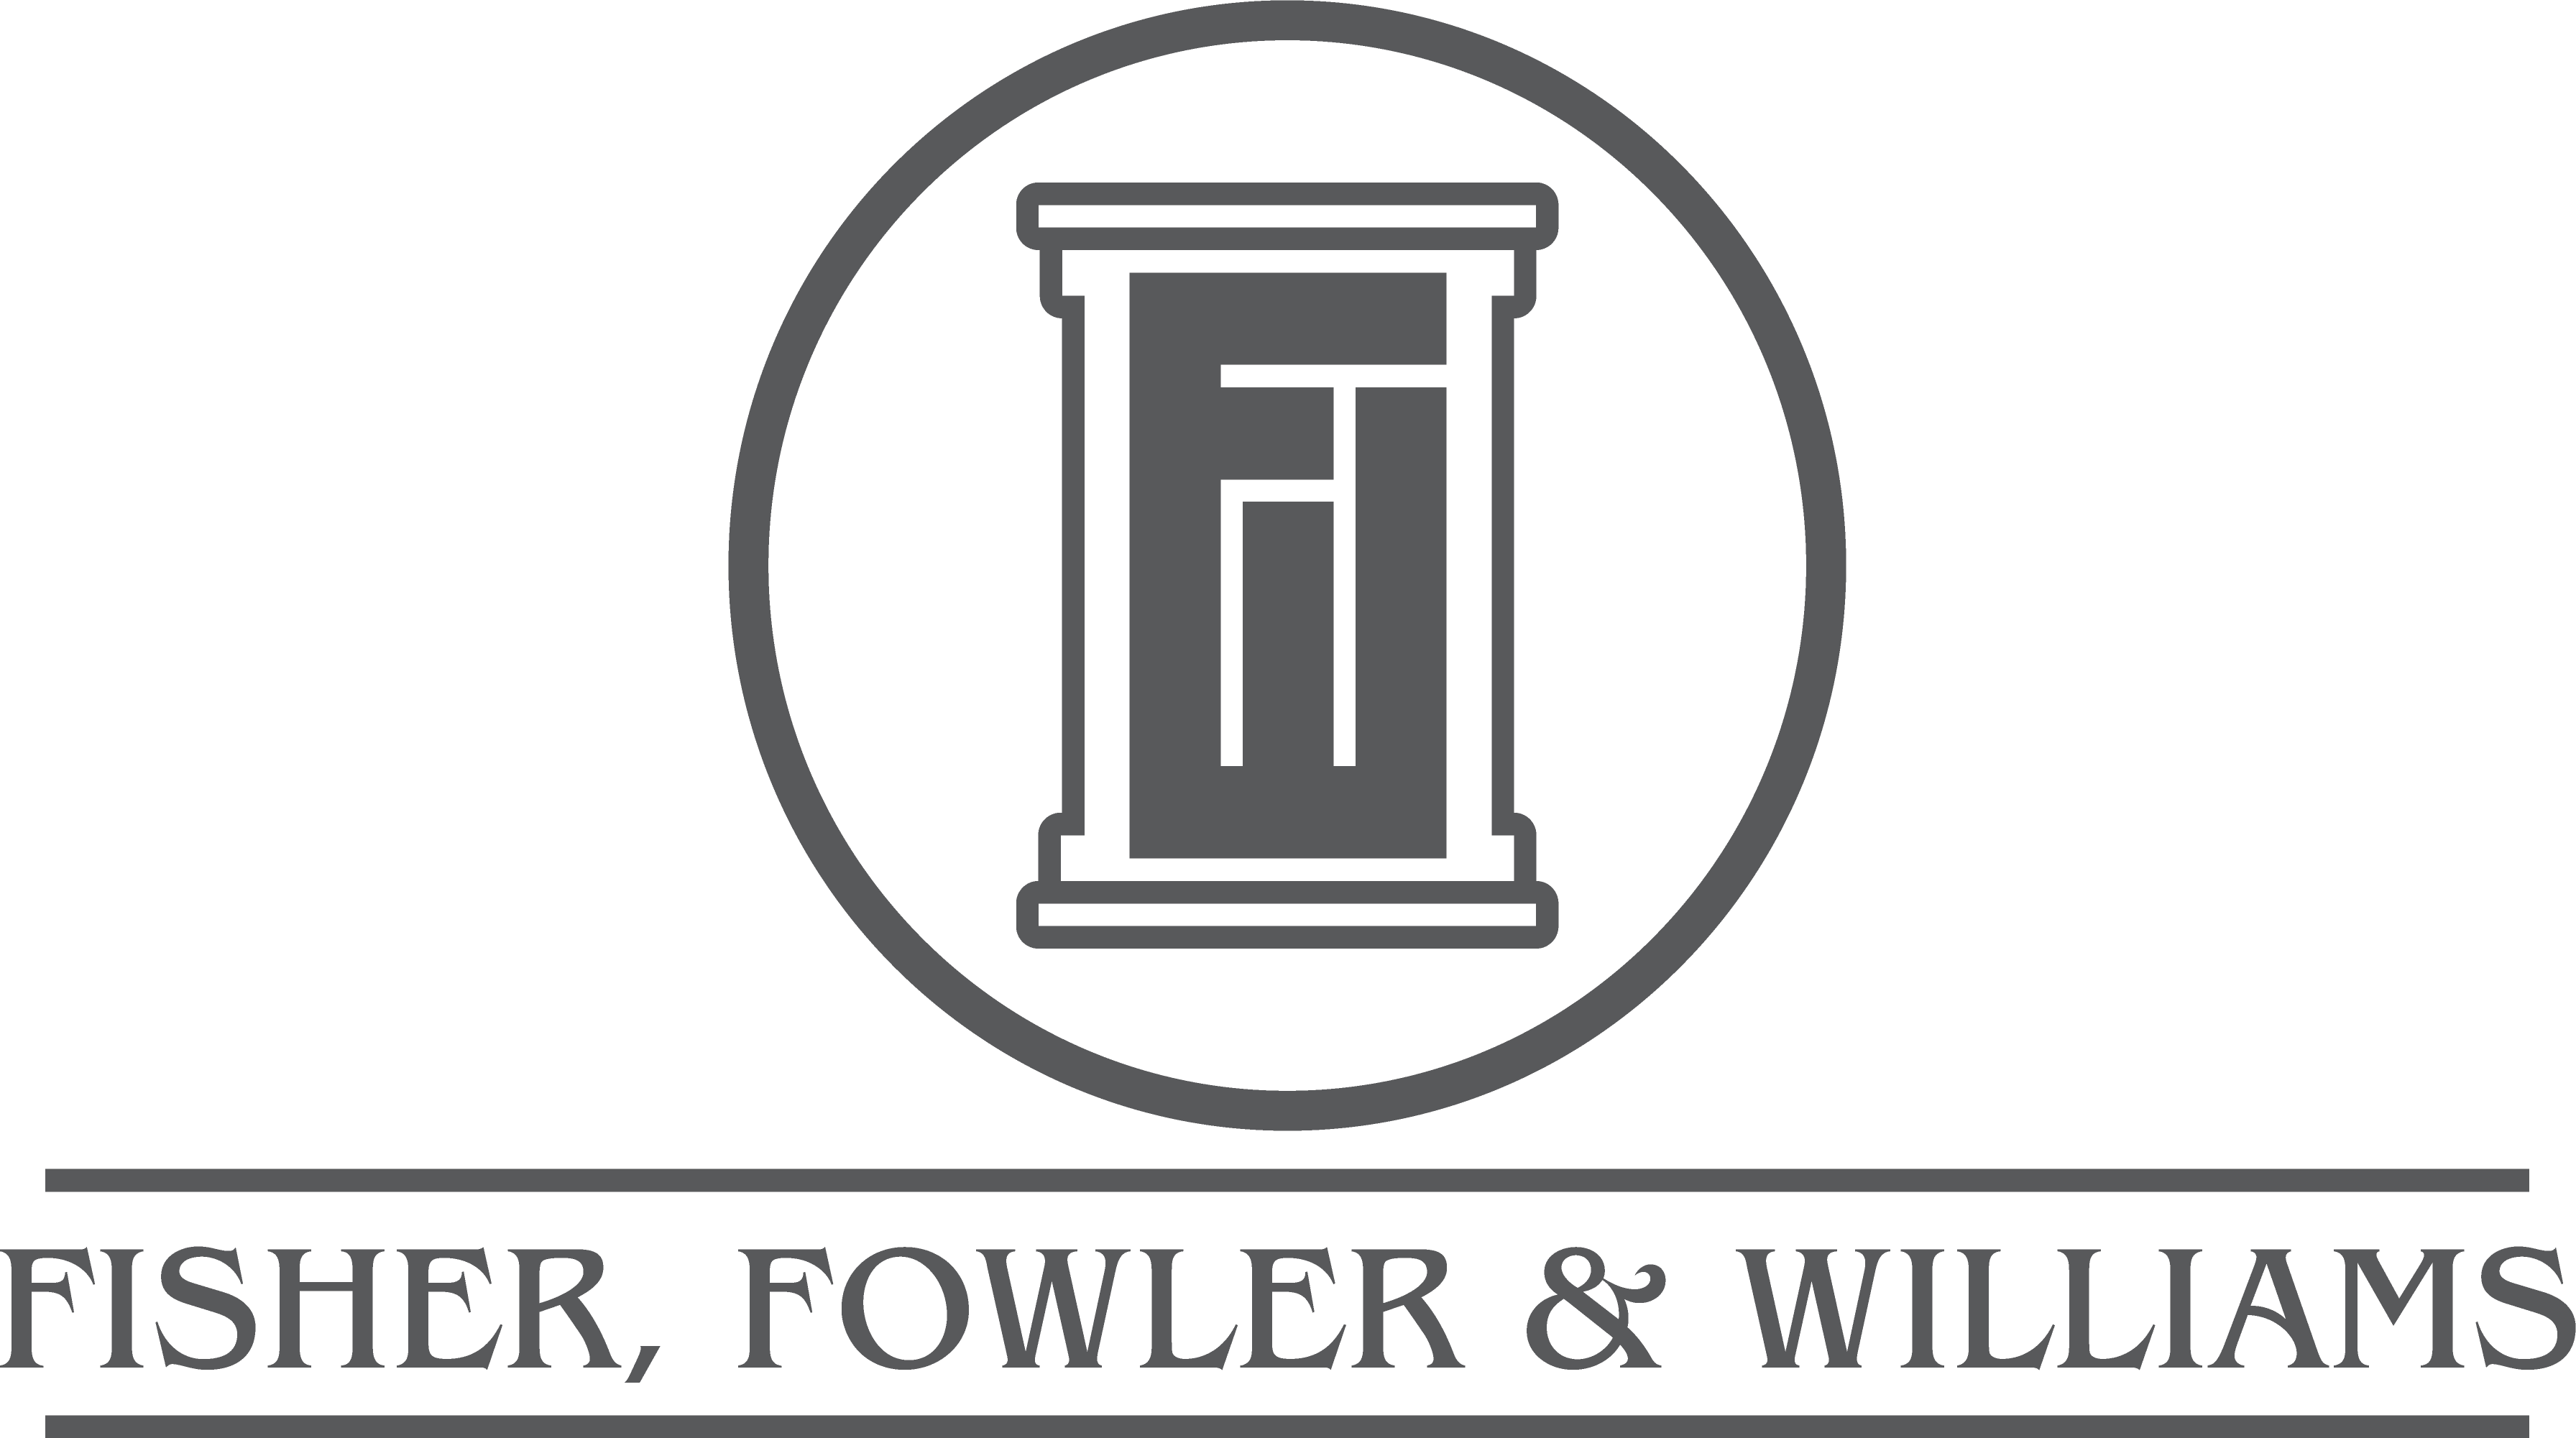 Fisher, Fowler & Williams PLC